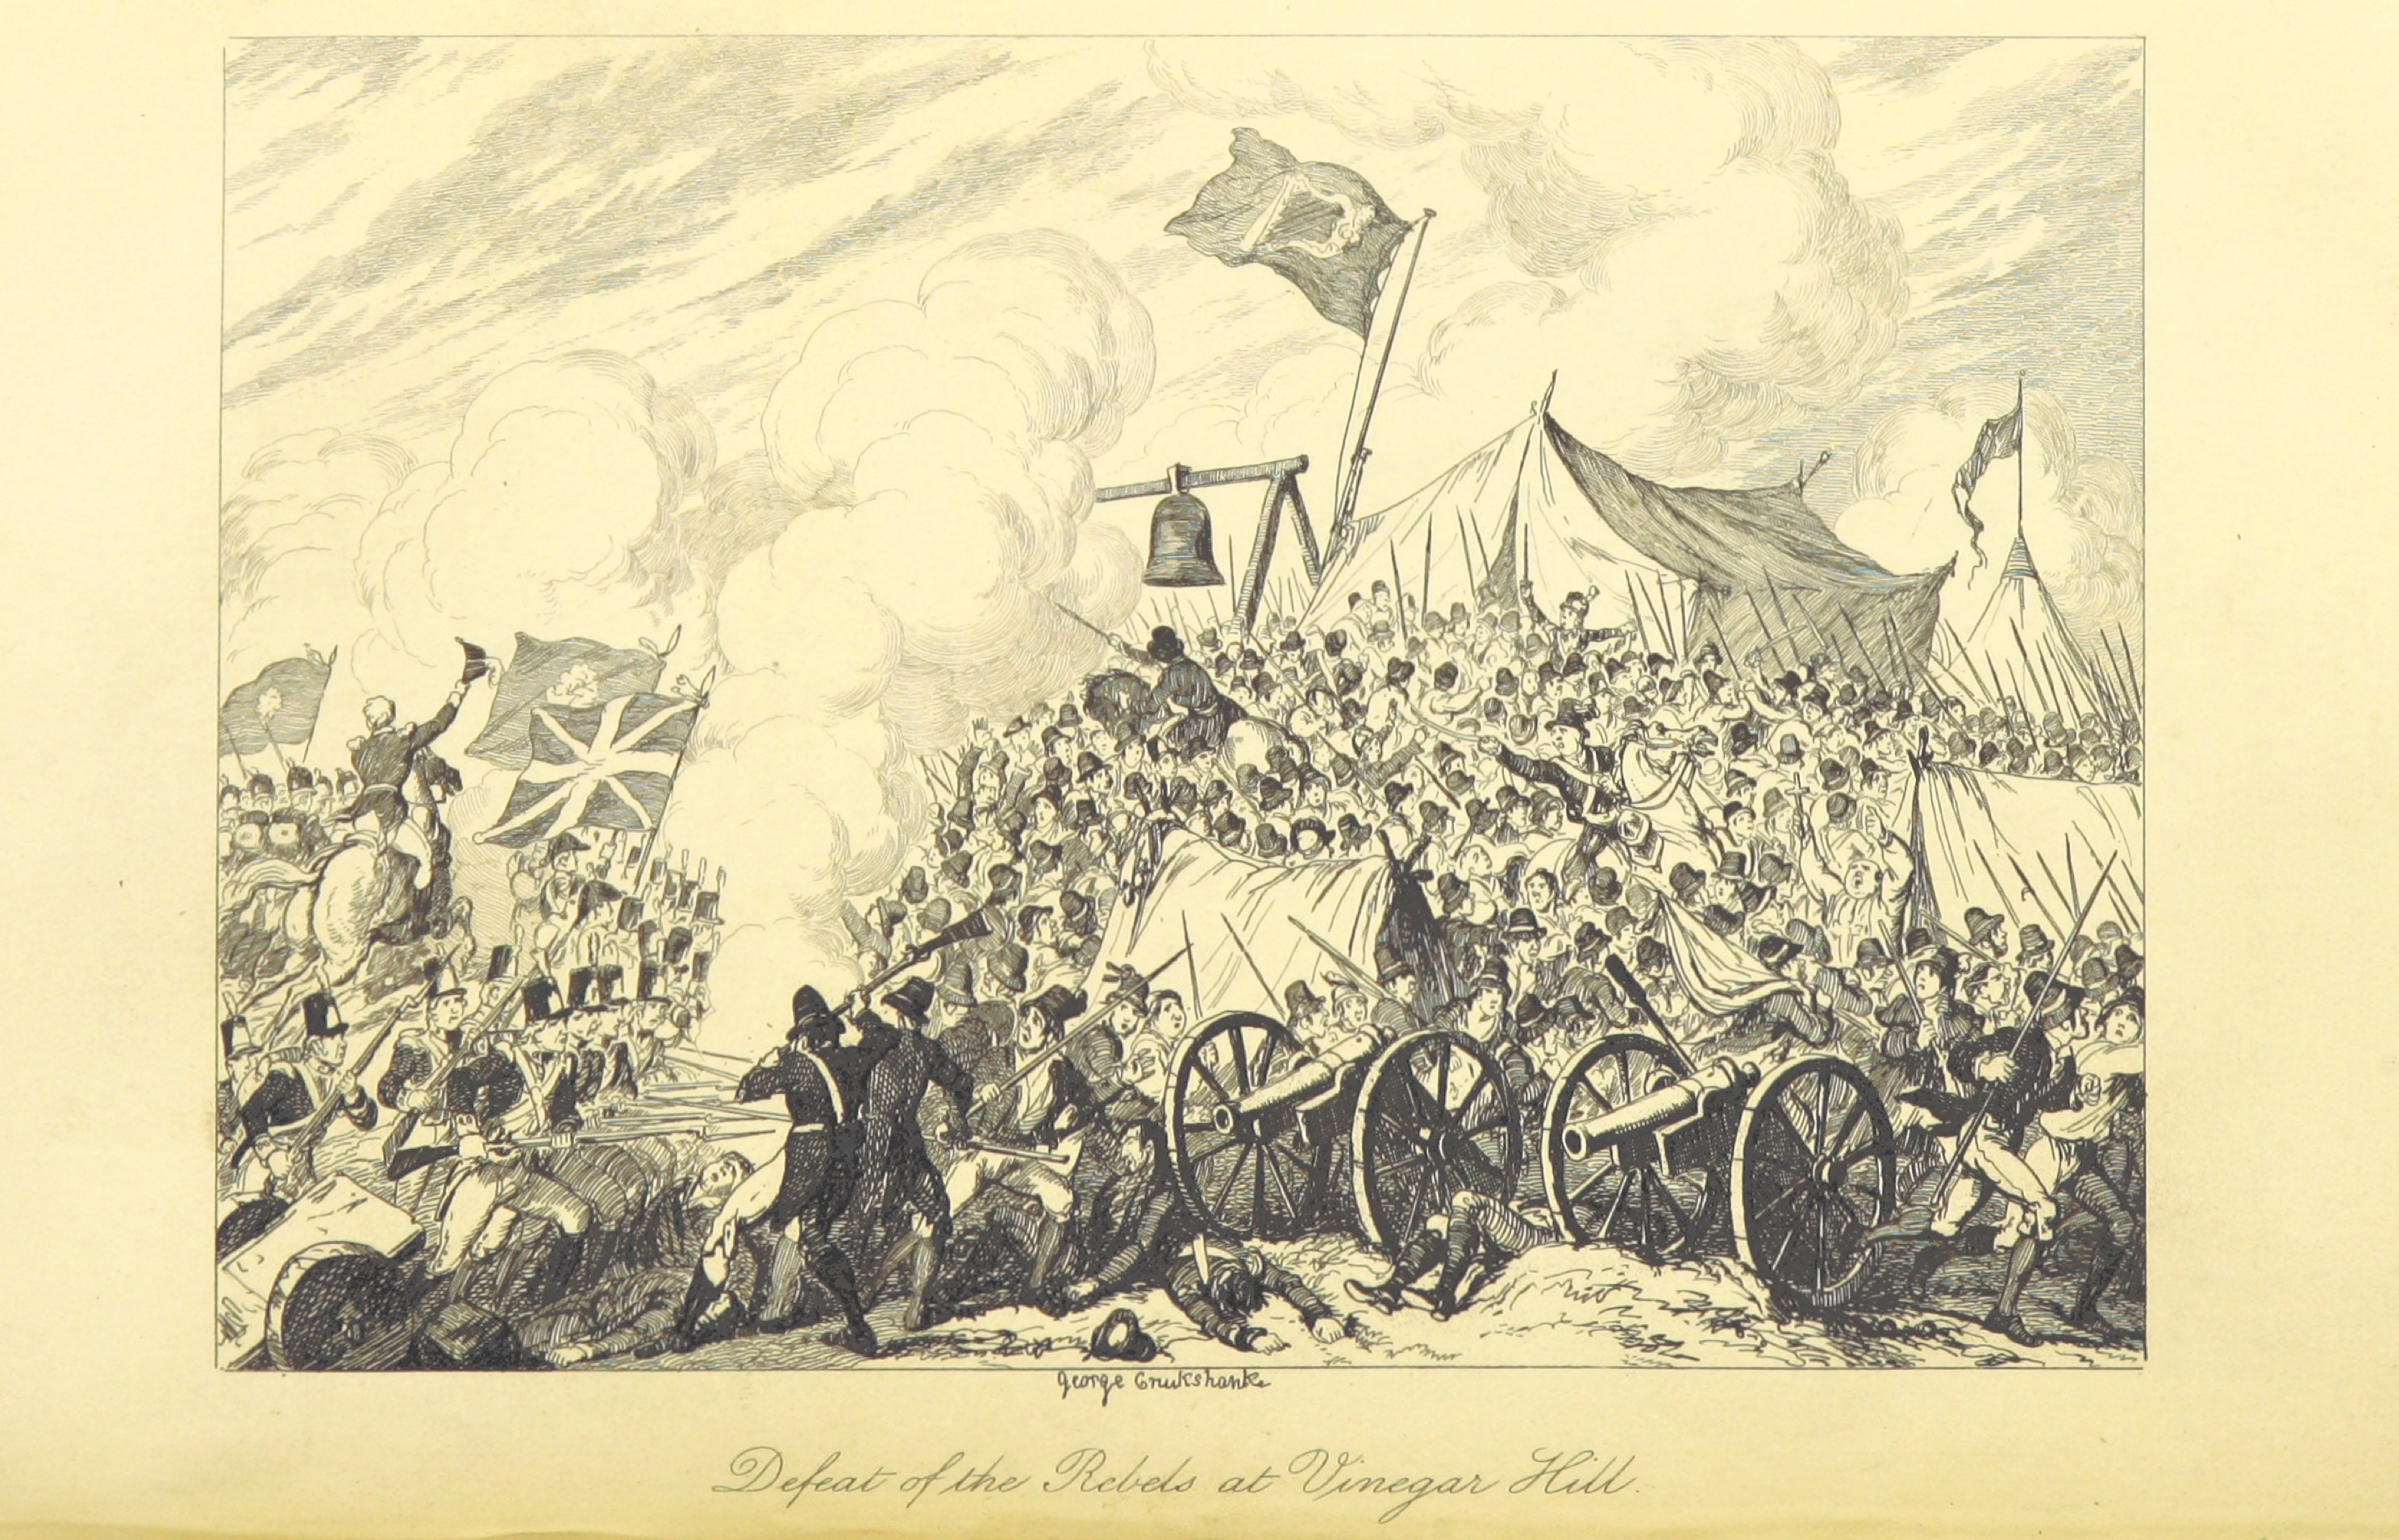 George Cruikshank, Defeat of the Rebels at Vinegar Hill, Enniscorthy, County Wexford, United Irishmen, First Battle of Vinegar Hill, Irish rebels, Irish rebellion